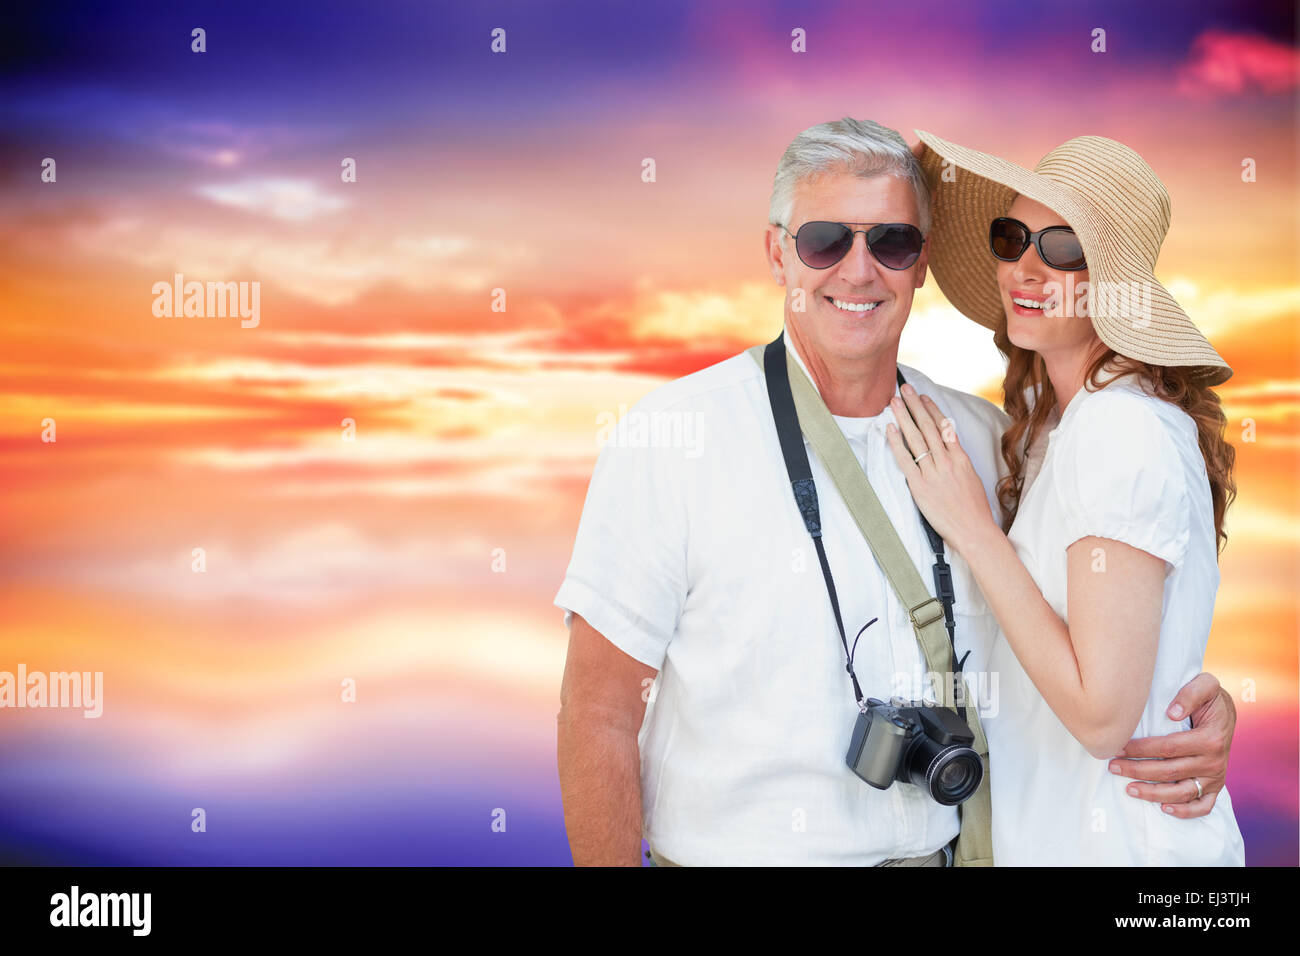 Composite image of vacationing couple - Stock Image